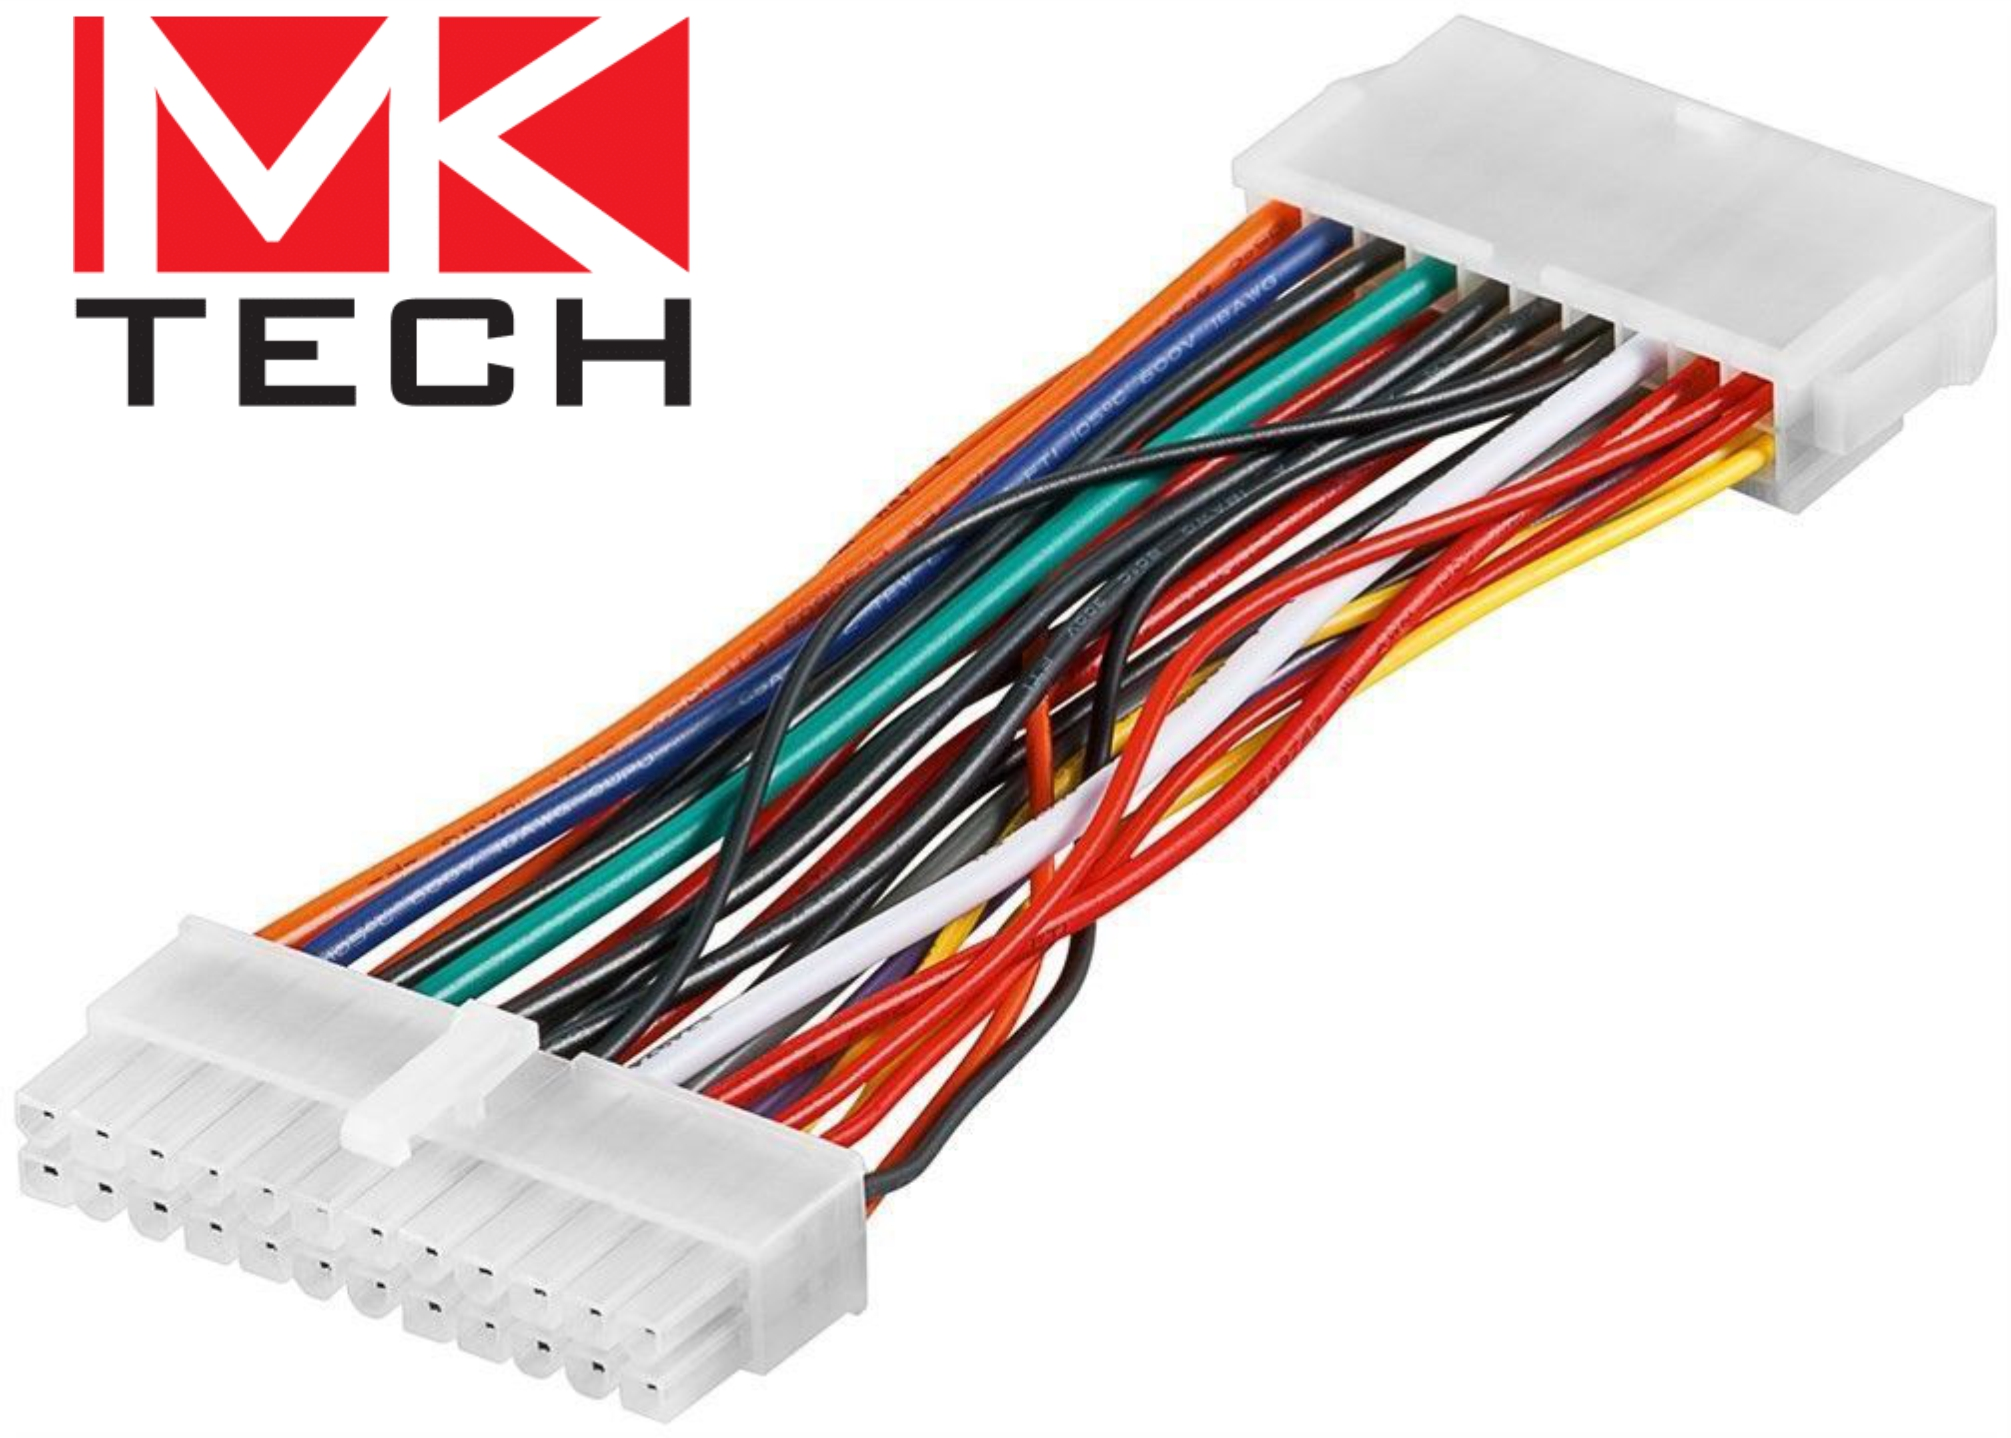 20pin-F to 24pin-M MKTECH